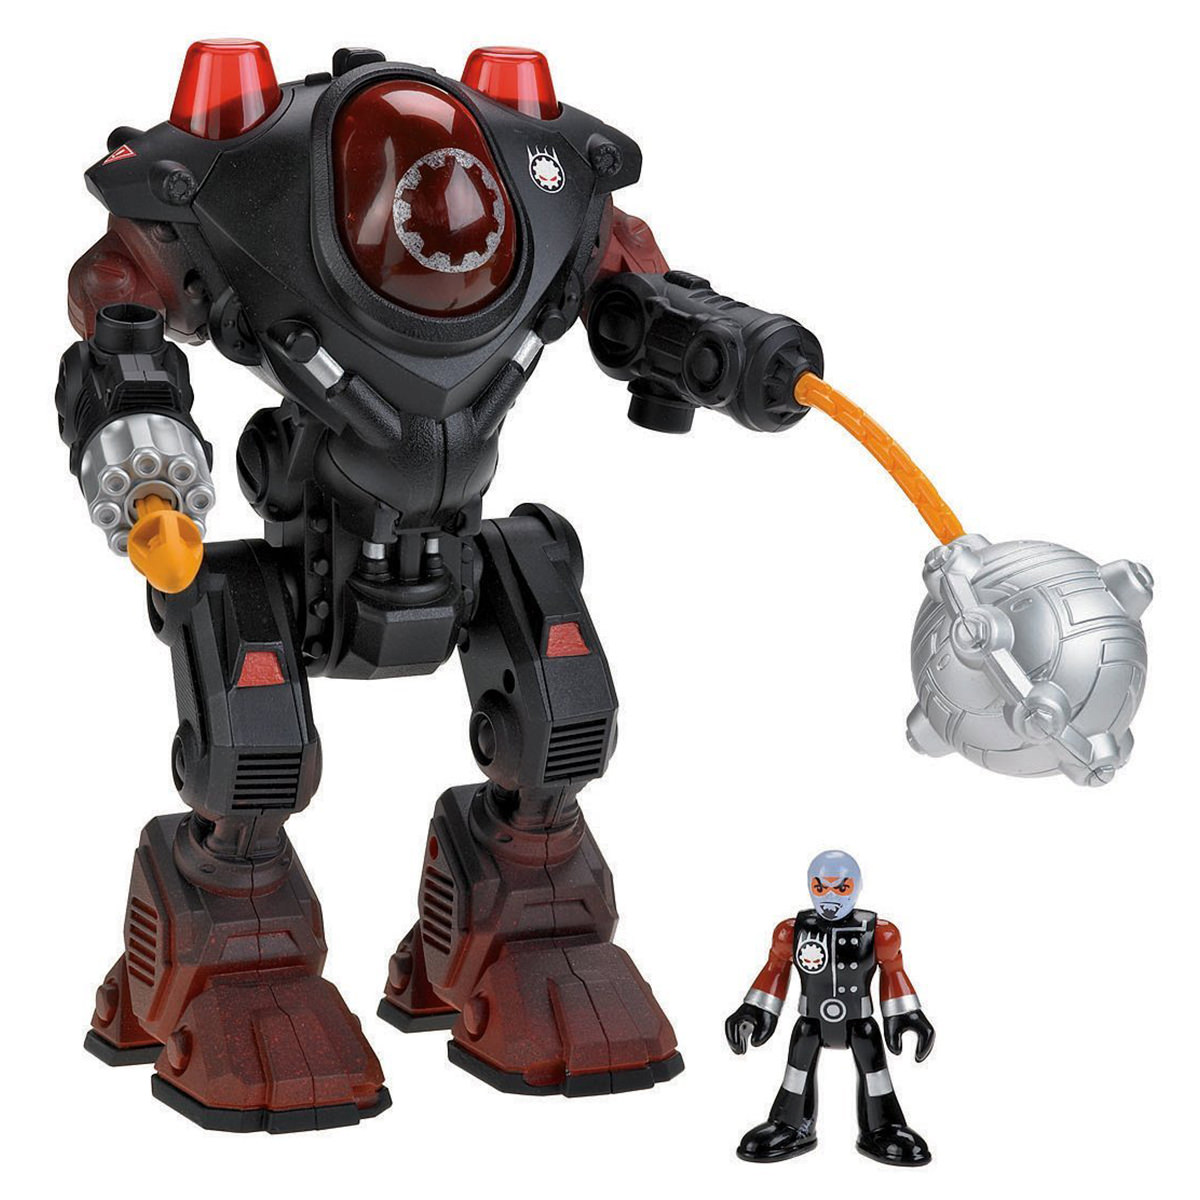 Fisher Price Imaginext Villain Robot Action Figure Toy